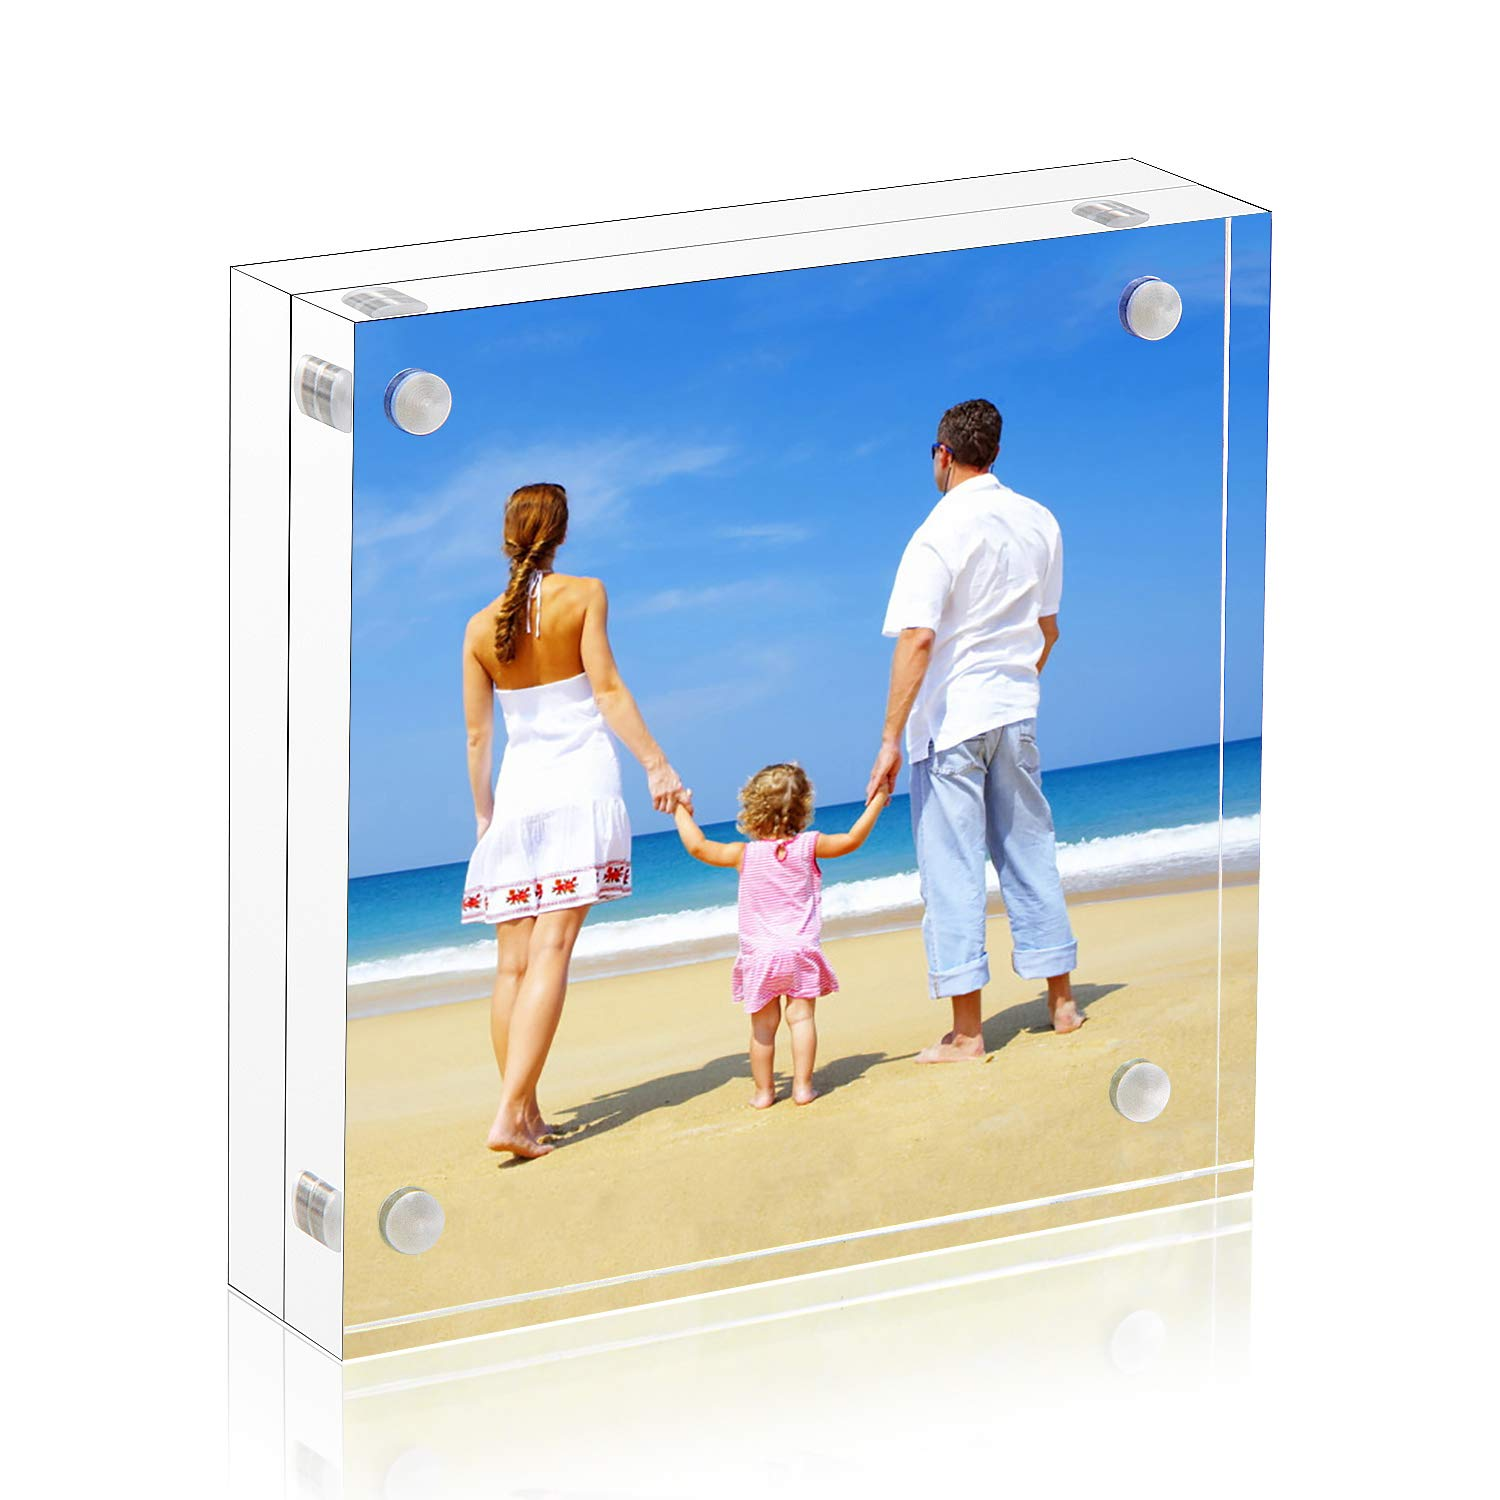 NIUBEE 5x5 Clear Acrylic Picture Frames 20% Thicker Blocks with Gift Box Package, Self Standing Magnetic Photo Frame, Frameless Desktop Card Display by NIUBEE